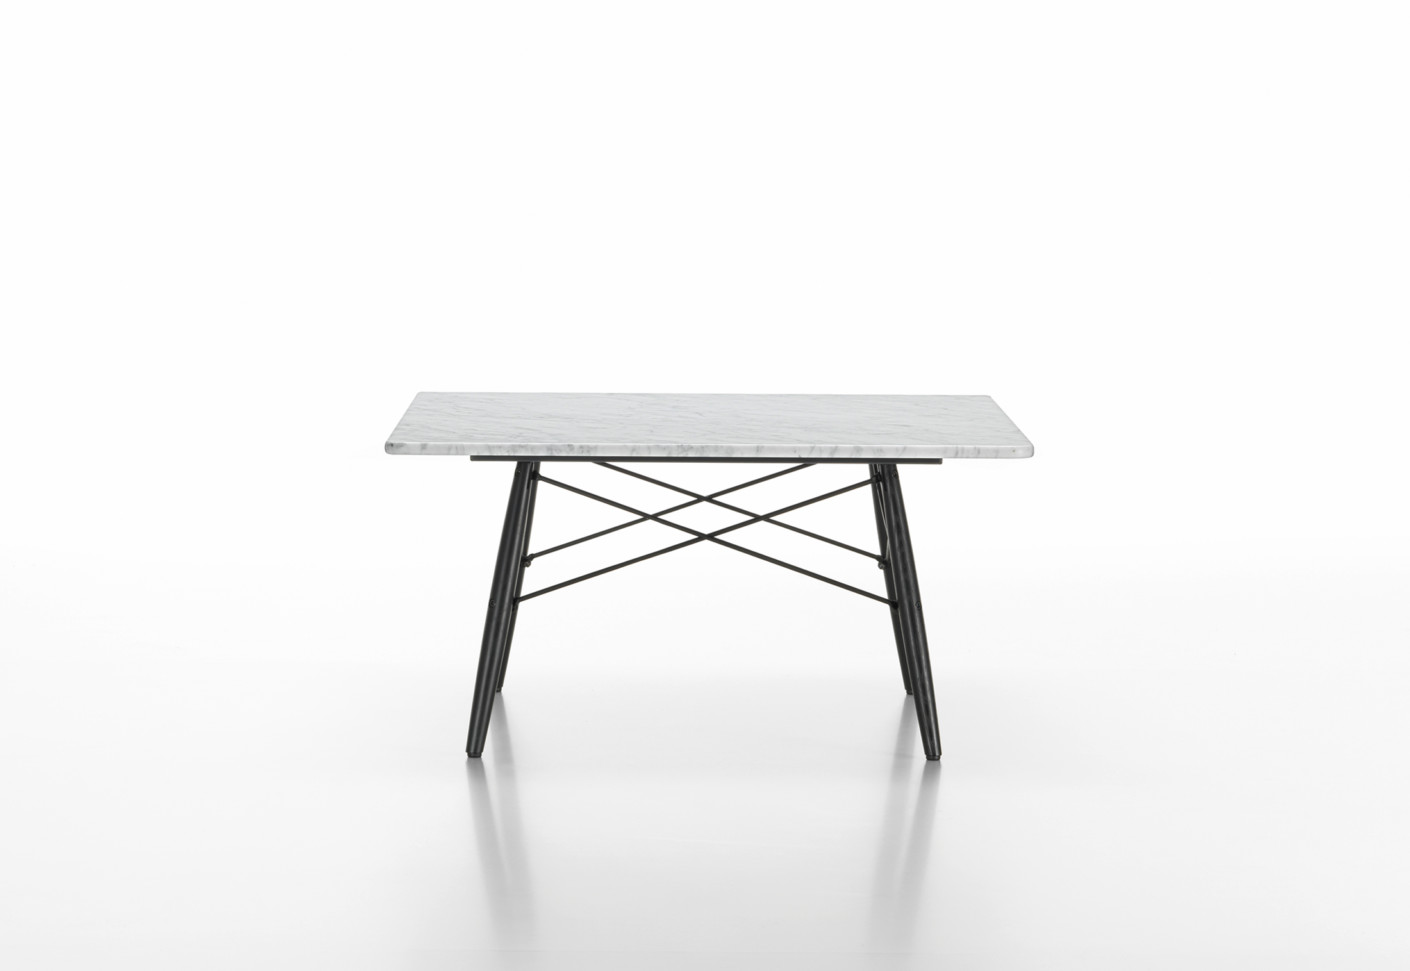 Eames Couchtisch Eames Coffee Table Von Vitra Stylepark